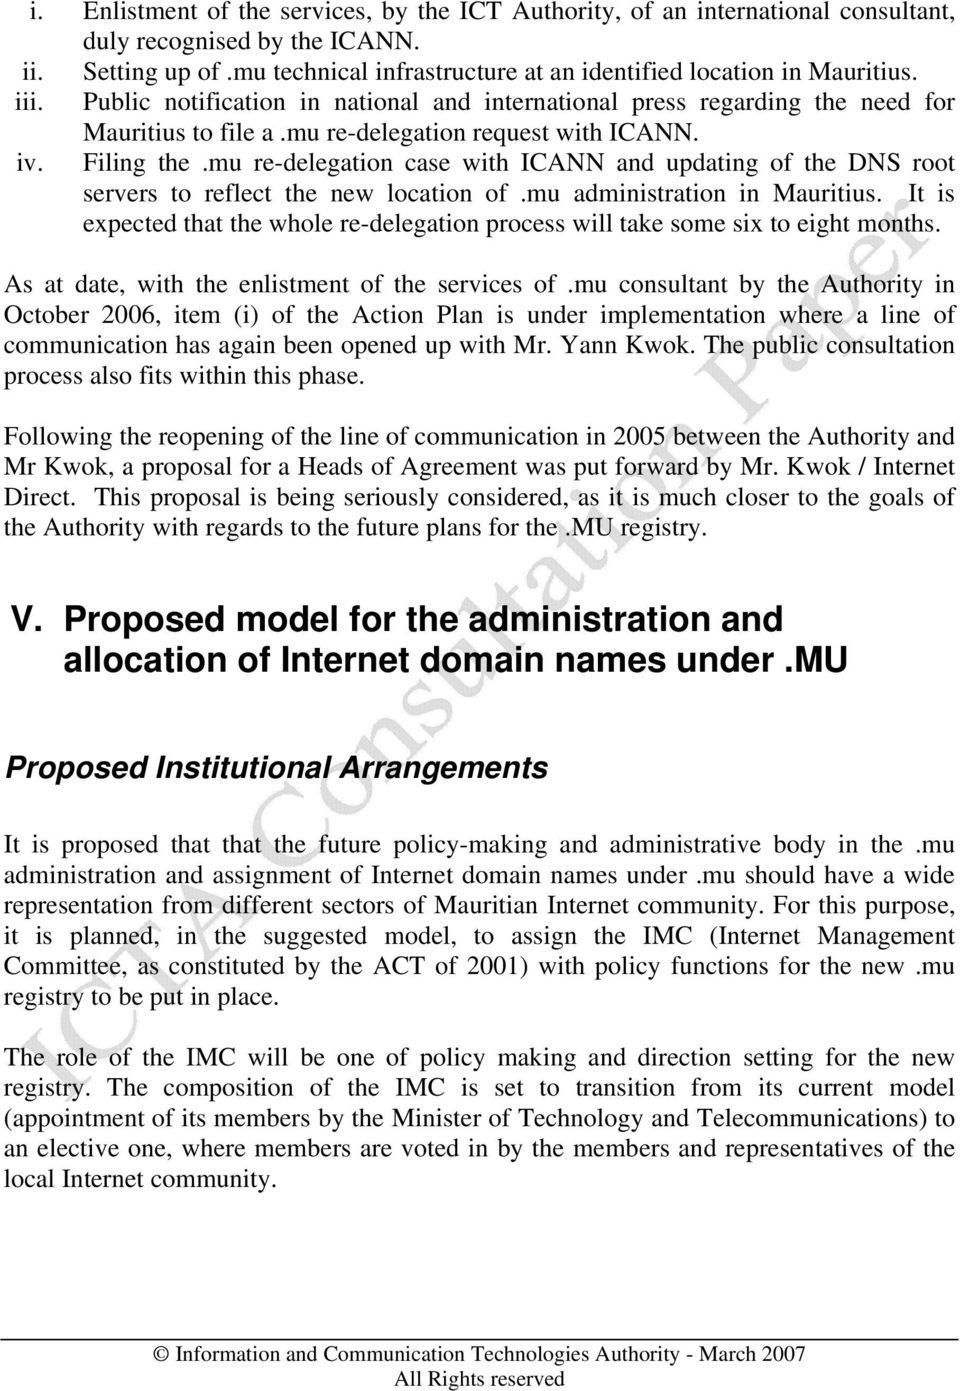 mu re-delegation case with ICANN and updating of the DNS root servers to reflect the new location of.mu administration in Mauritius.